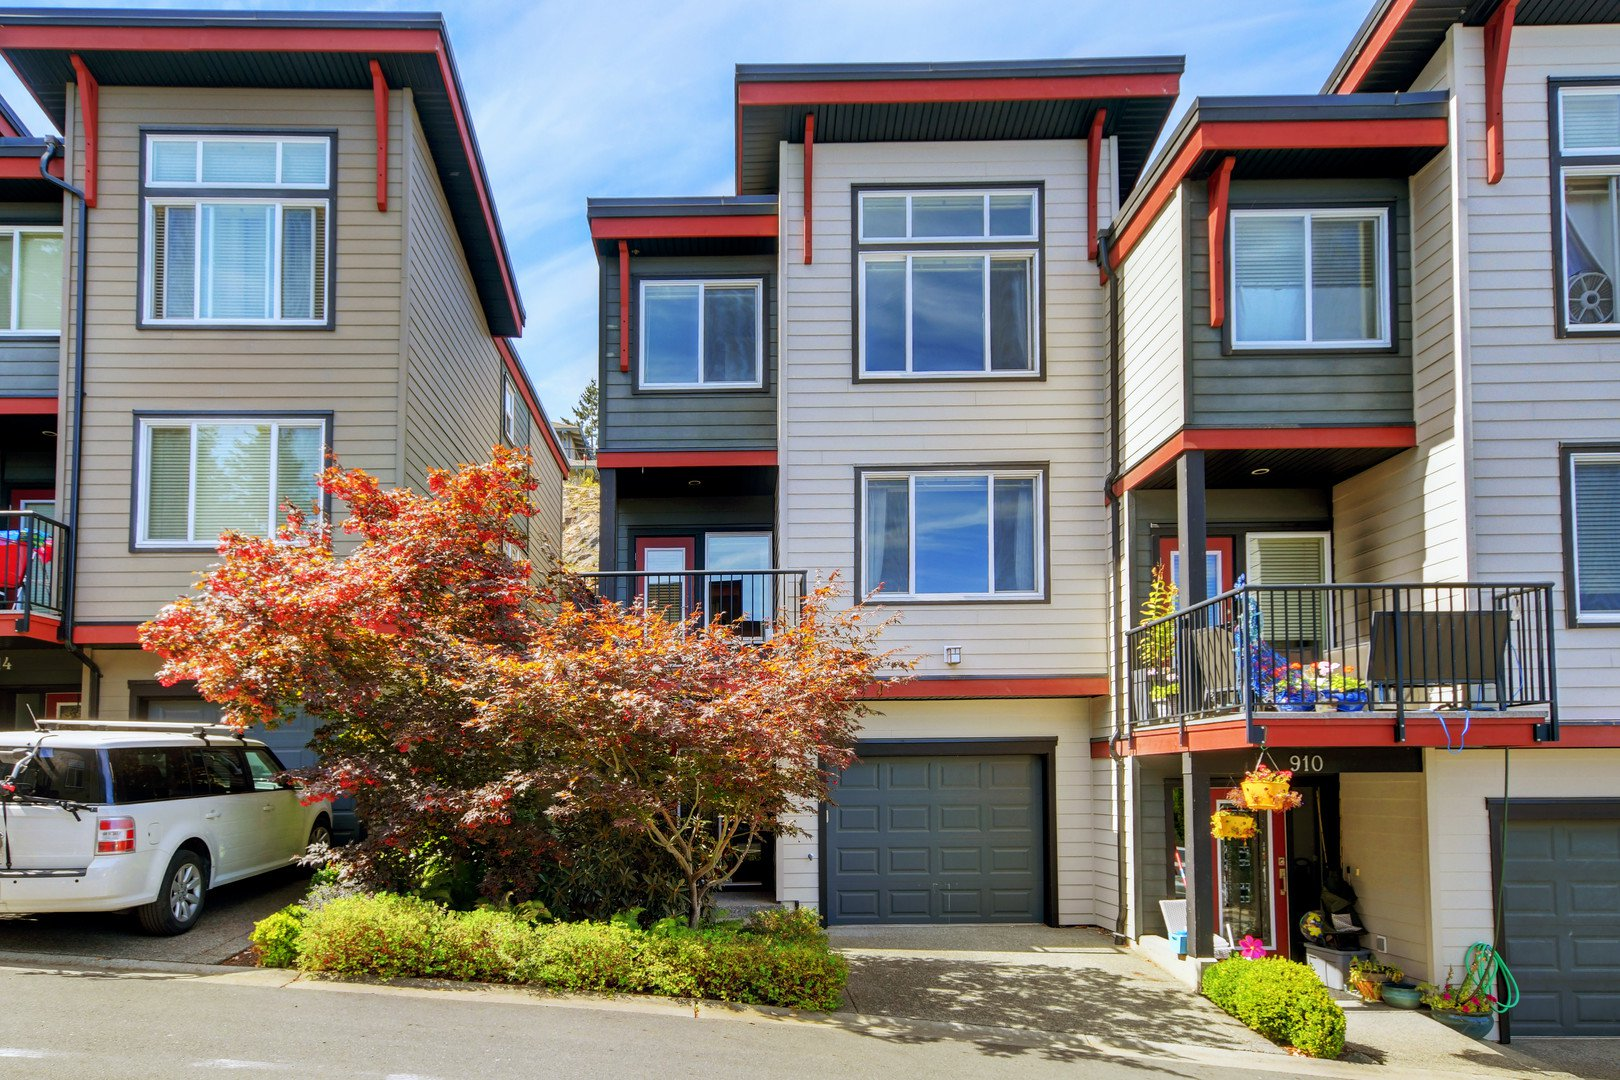 Main Photo: 912 North Hill Place in VICTORIA: La Bear Mountain Row/Townhouse for sale (Langford)  : MLS®# 415175